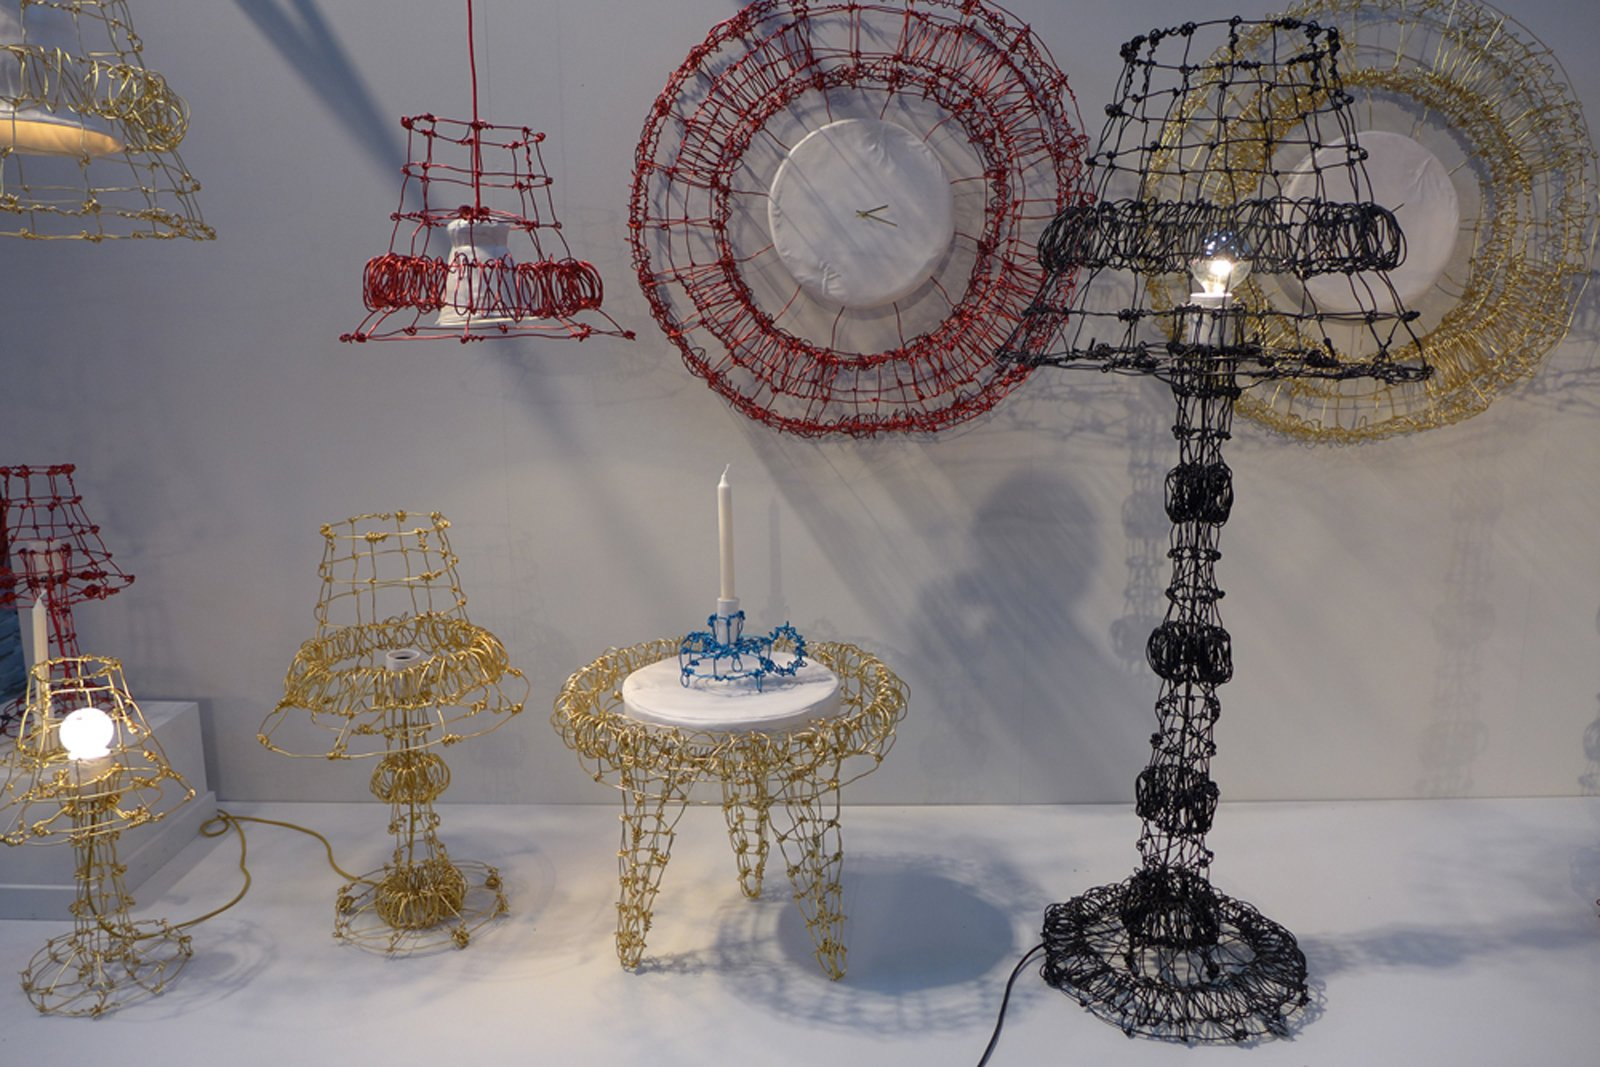 These extravagant pieces by Kiki van Eijk are made from twisted anodized-aluminum wire. They are paired with ceramic pieces molded using fabric templates—a common material element in several of her pieces.  Dutch Design Week 2012, Pt. 2 by Maarten Dinger